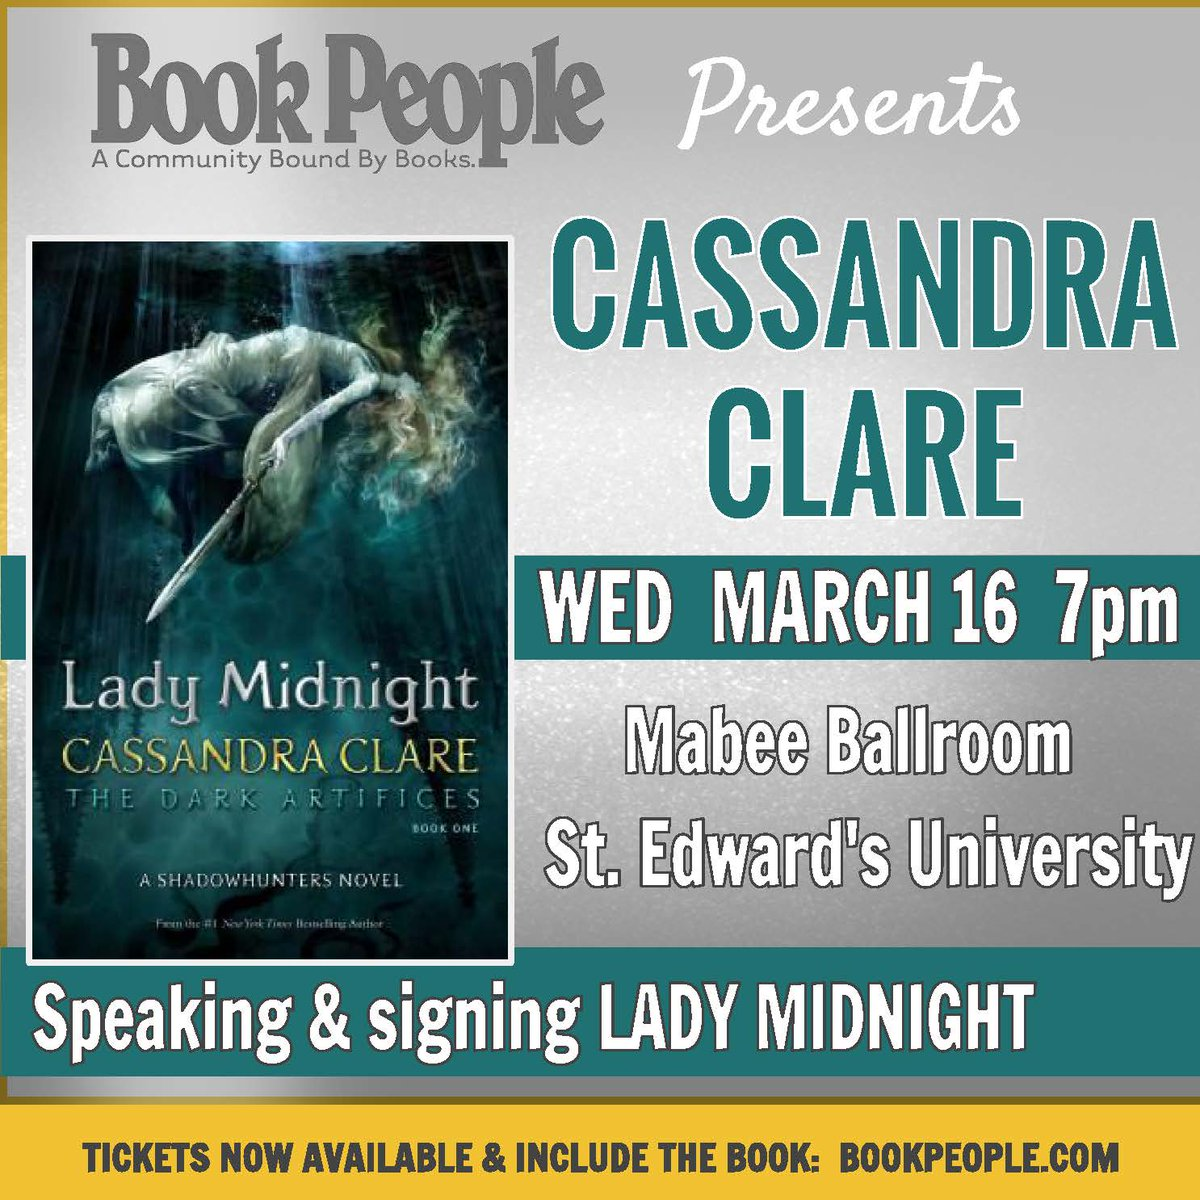 JUST BOOKED! Bestselling author @cassieclare speaks/signs LADY MIDNIGHT Wed, 3/16 7PM https://t.co/ADmmrH2kiT #YALit https://t.co/tH8ARYvokr